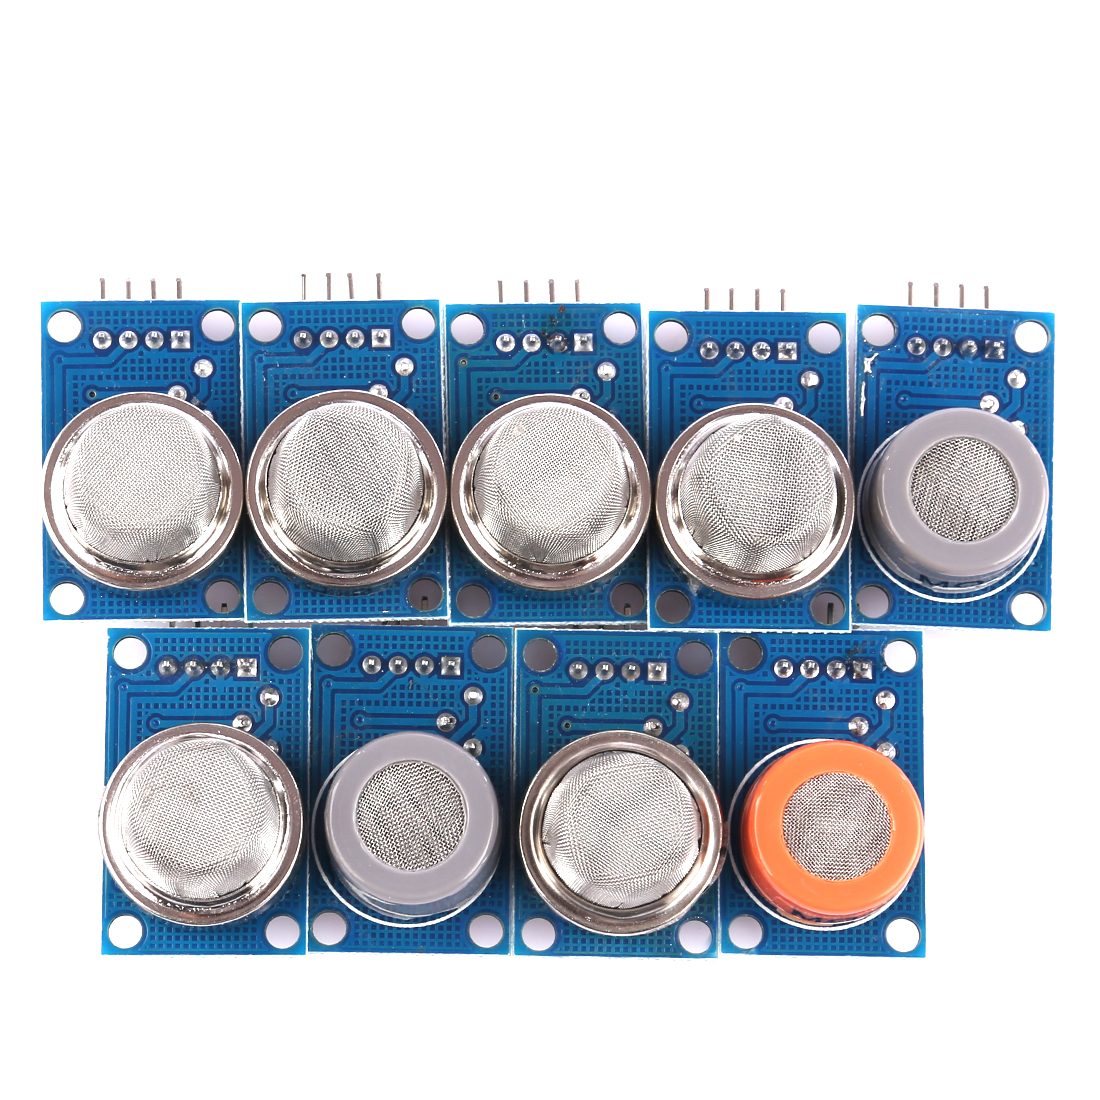 9Pcs Sensor Module Kit With MQ2 MQ-3 MQ-4 MQ-5 MQ-6 MQ-7 MQ-8 MQ-9 MQ-135 Sensor For Arduino